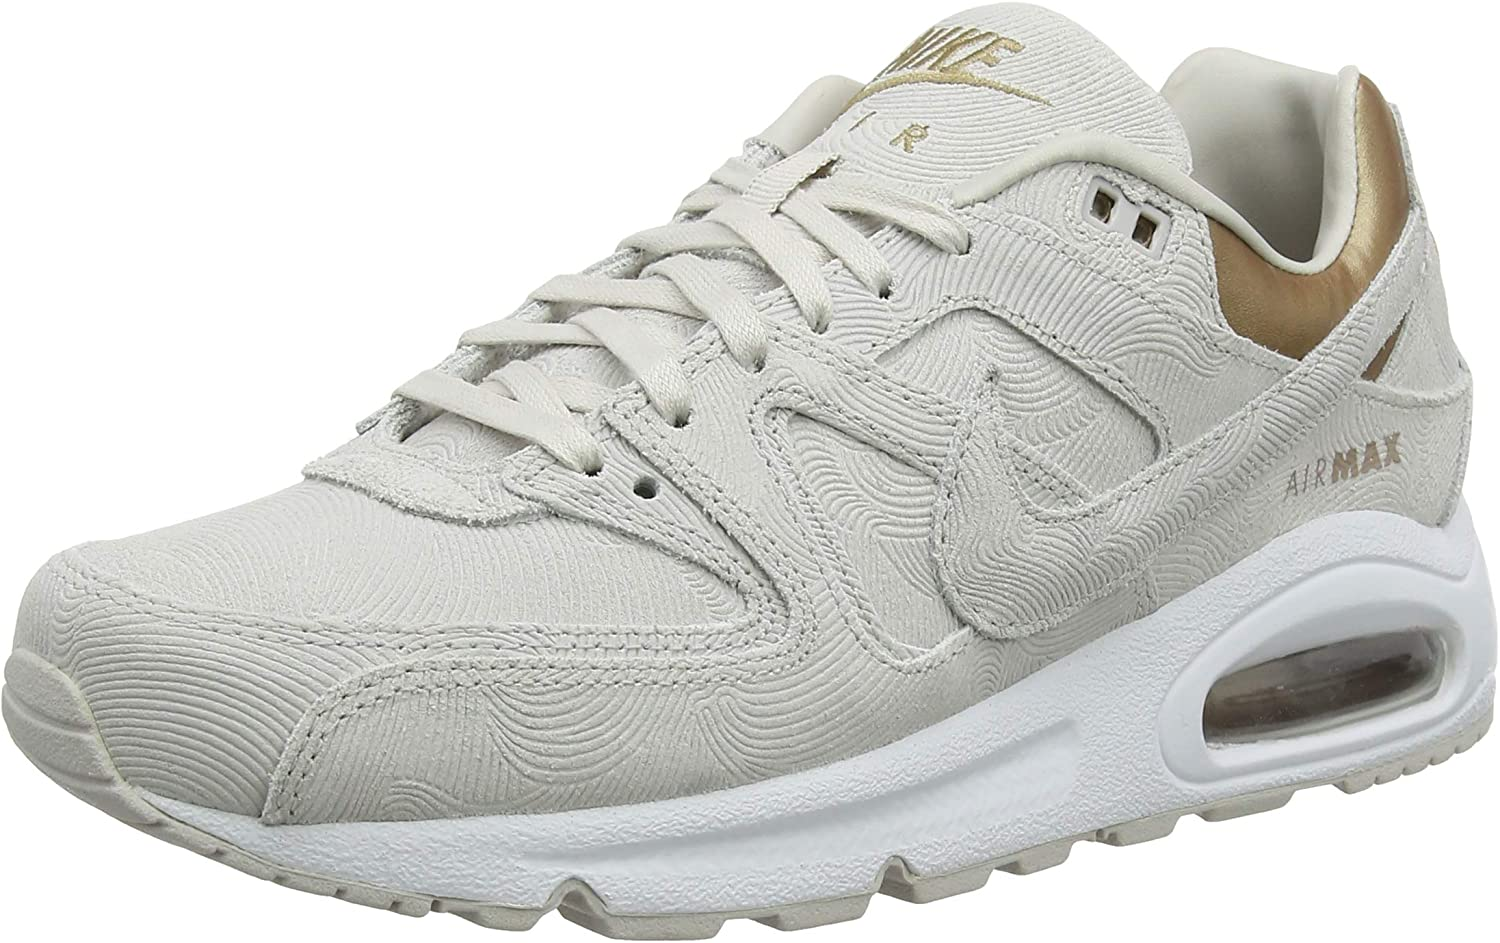 Nike Womens air max Command PRM Trainers 718896 Sneakers shoes